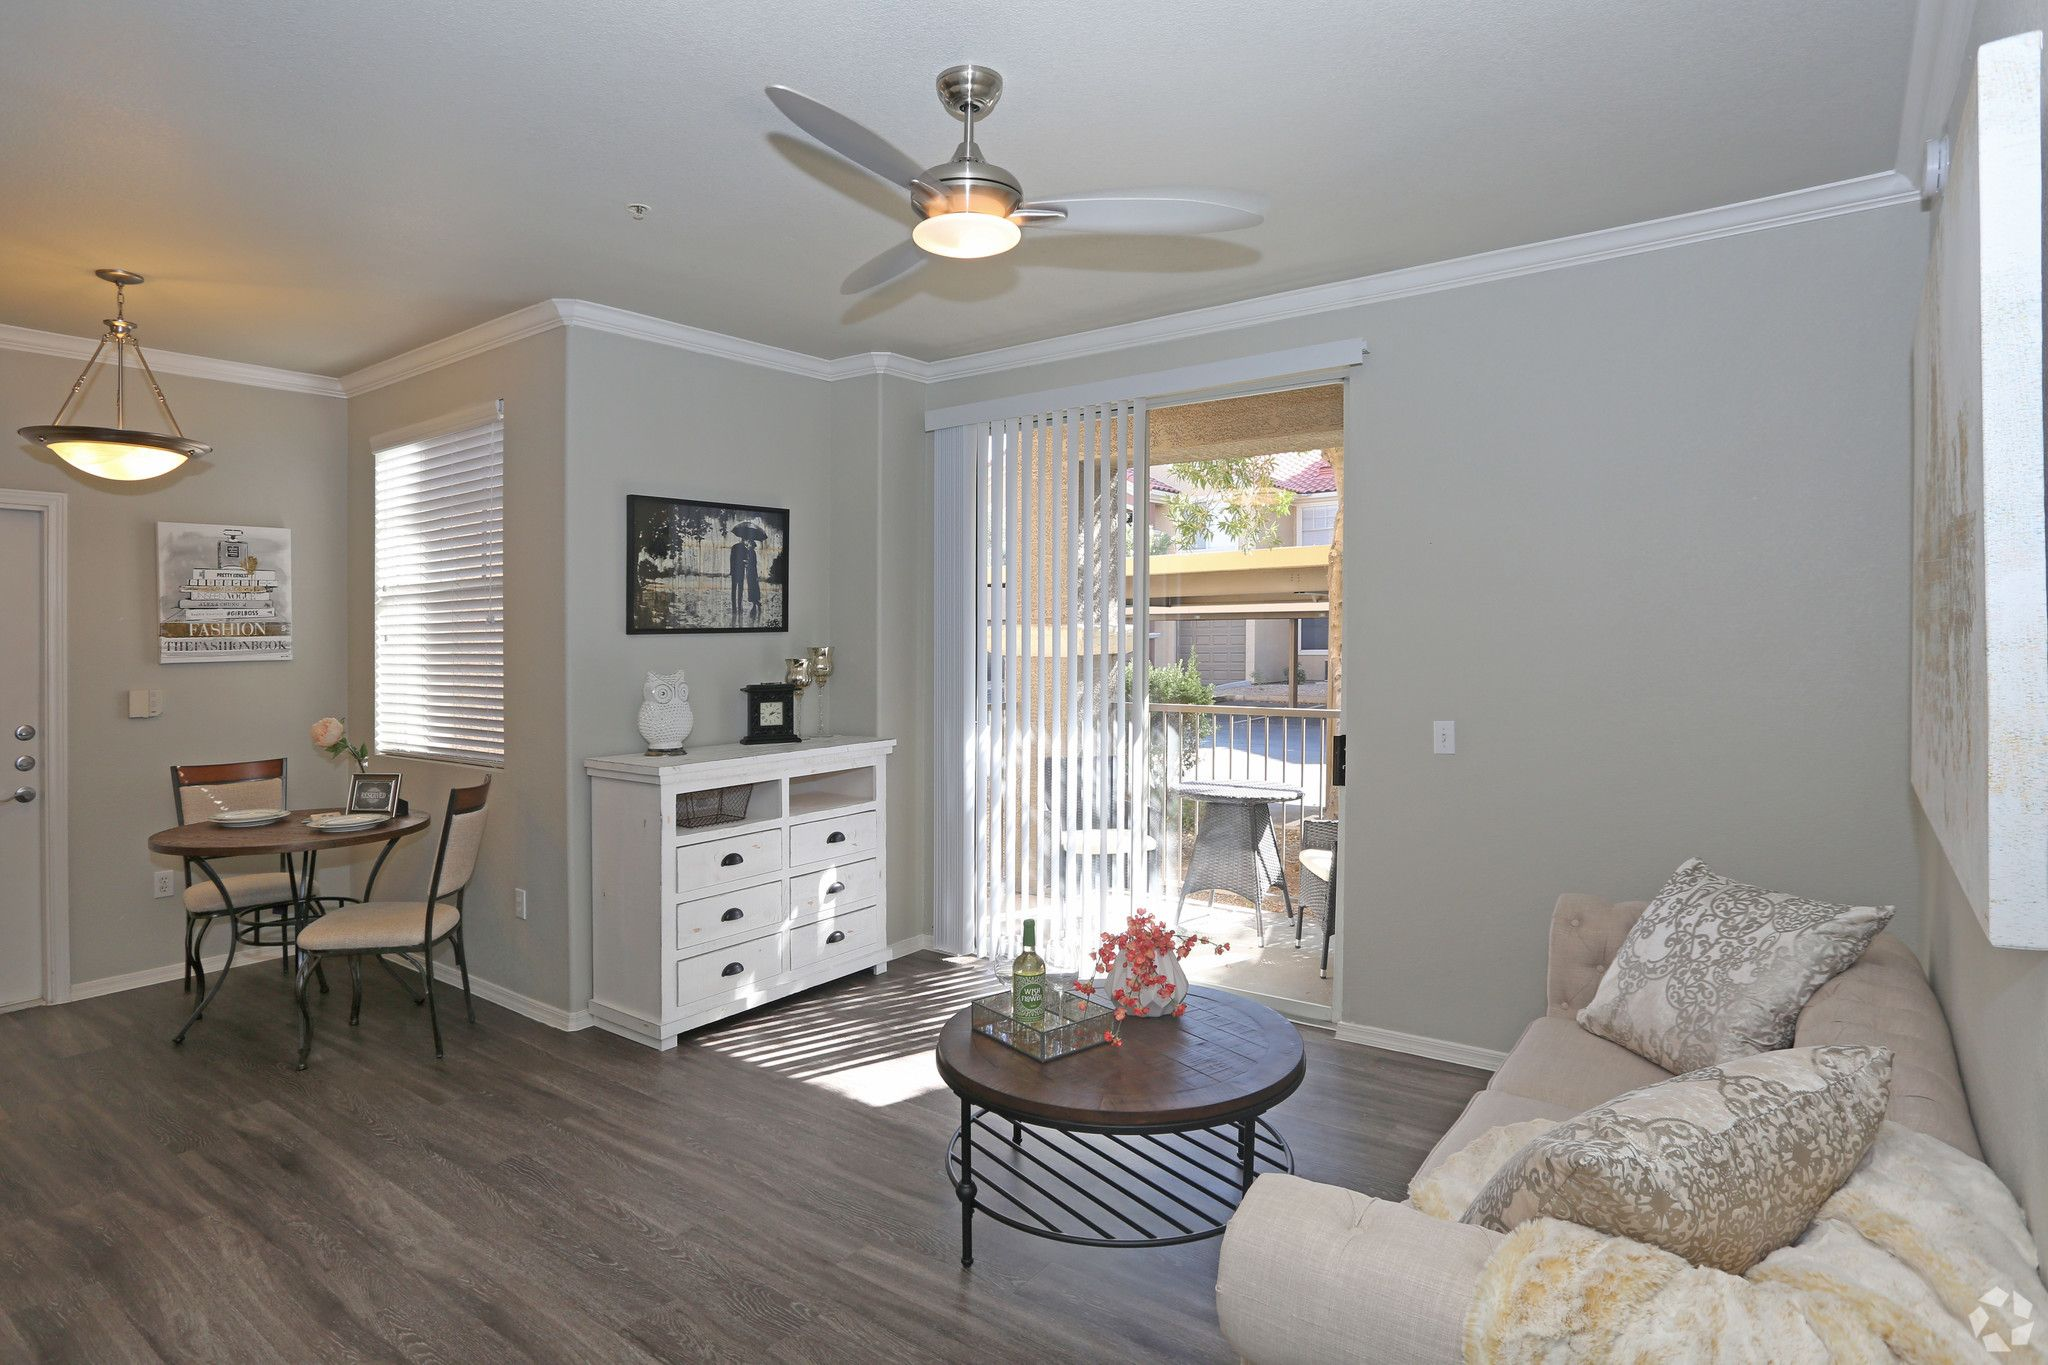 The Catherine Townhomes At Scottsdale Apartments Scottsdale Az Apartments Com Scottsdale Apartments Townhouse Apartments For Rent